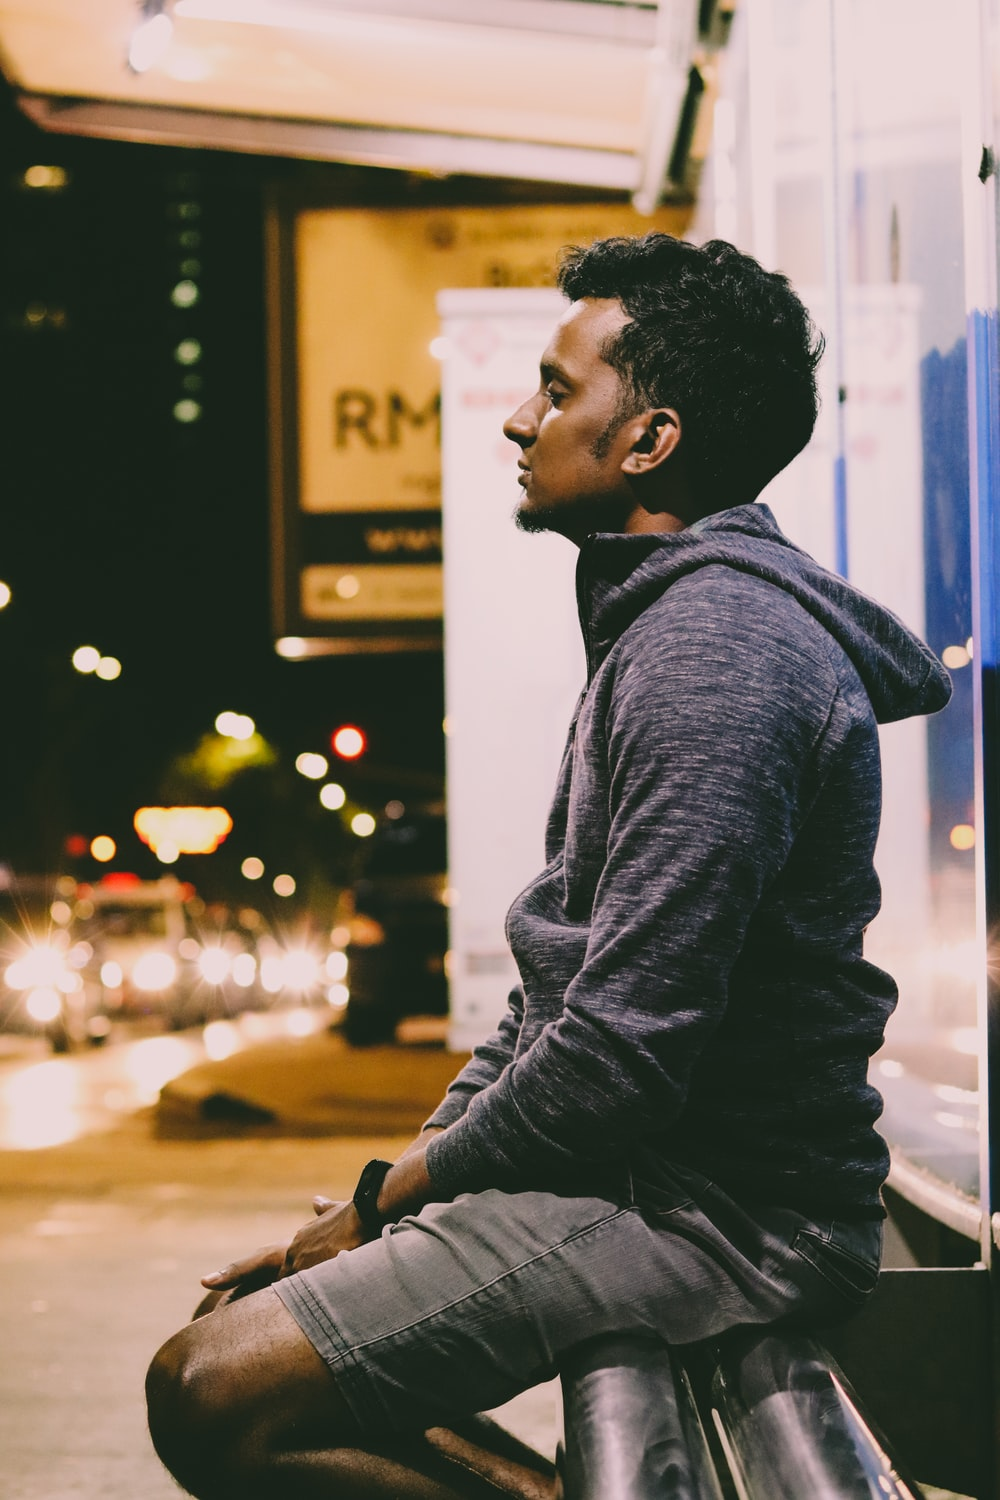 man in black leather jacket sitting on the sidewalk during night time